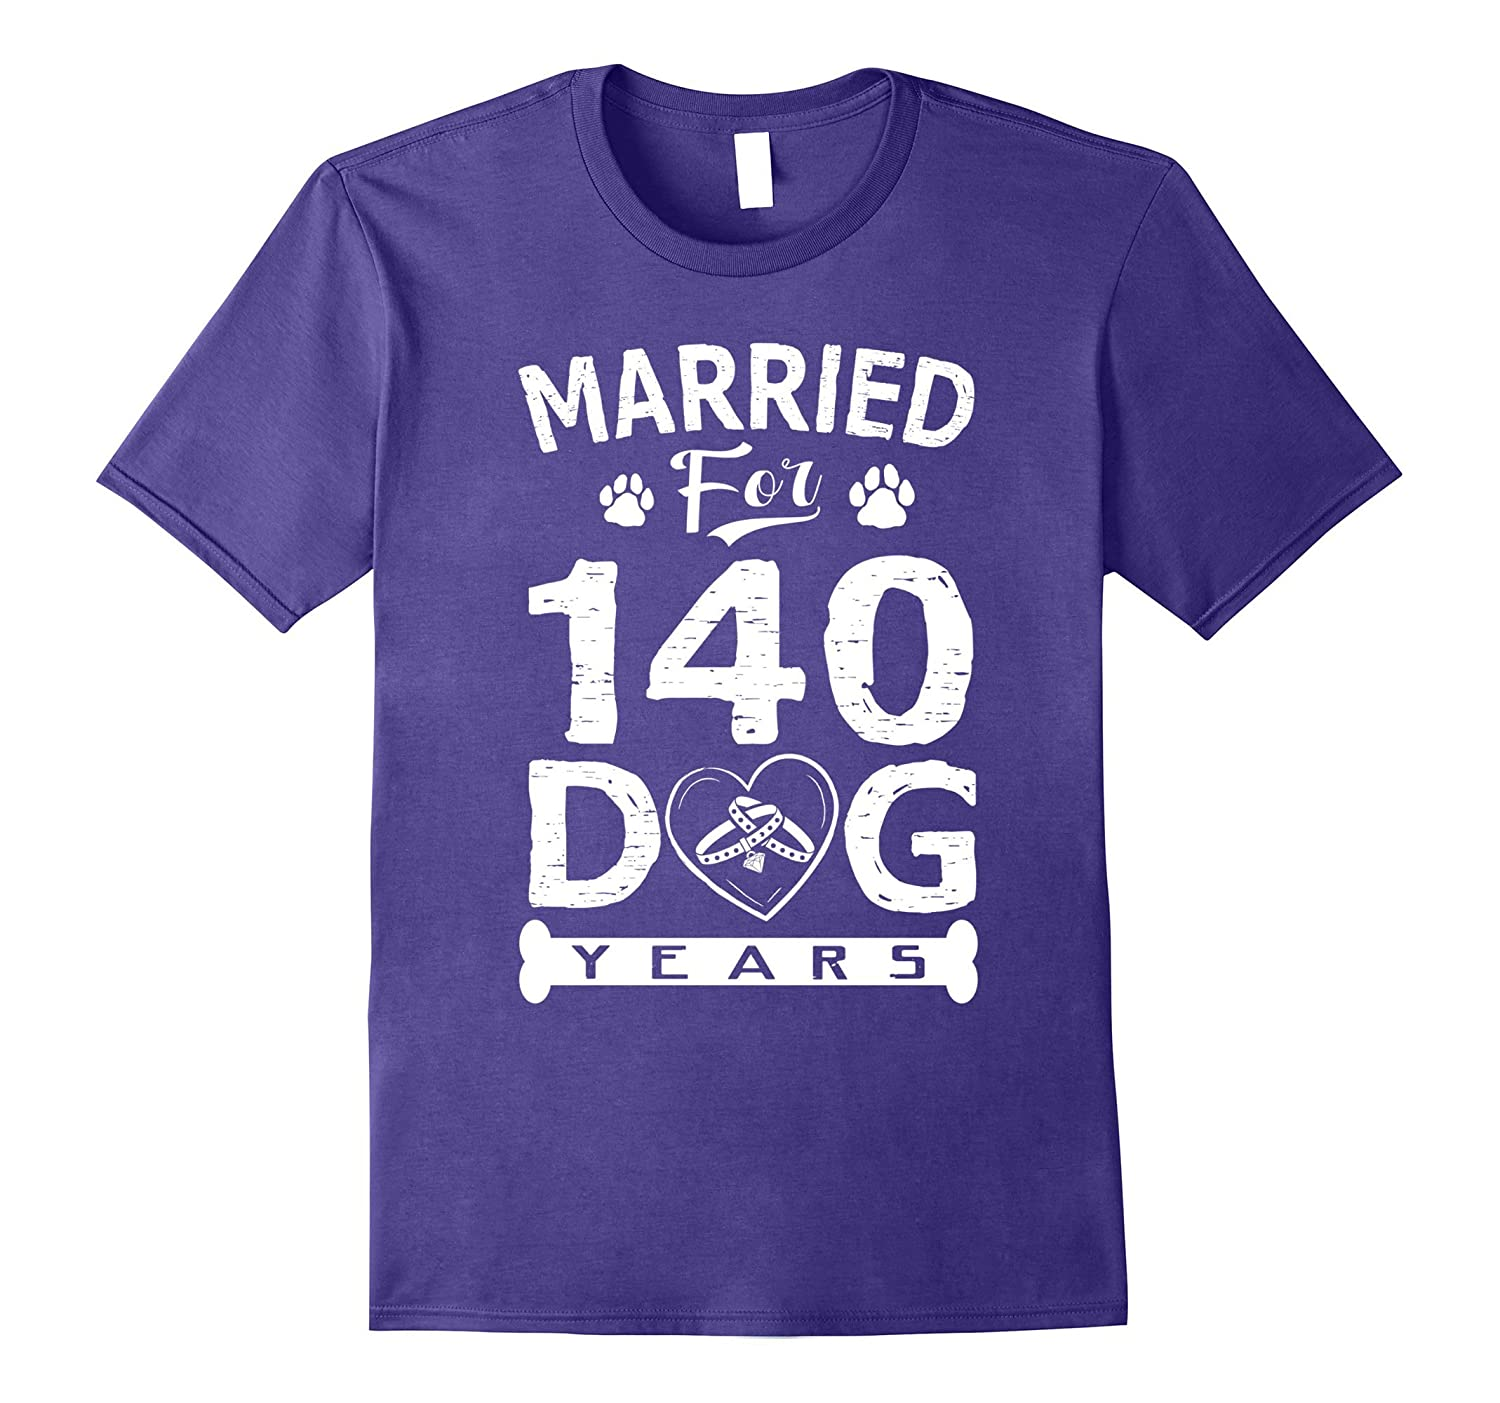 20th Wedding Anniversary T-Shirt Married For 140 Dog Years-ANZ